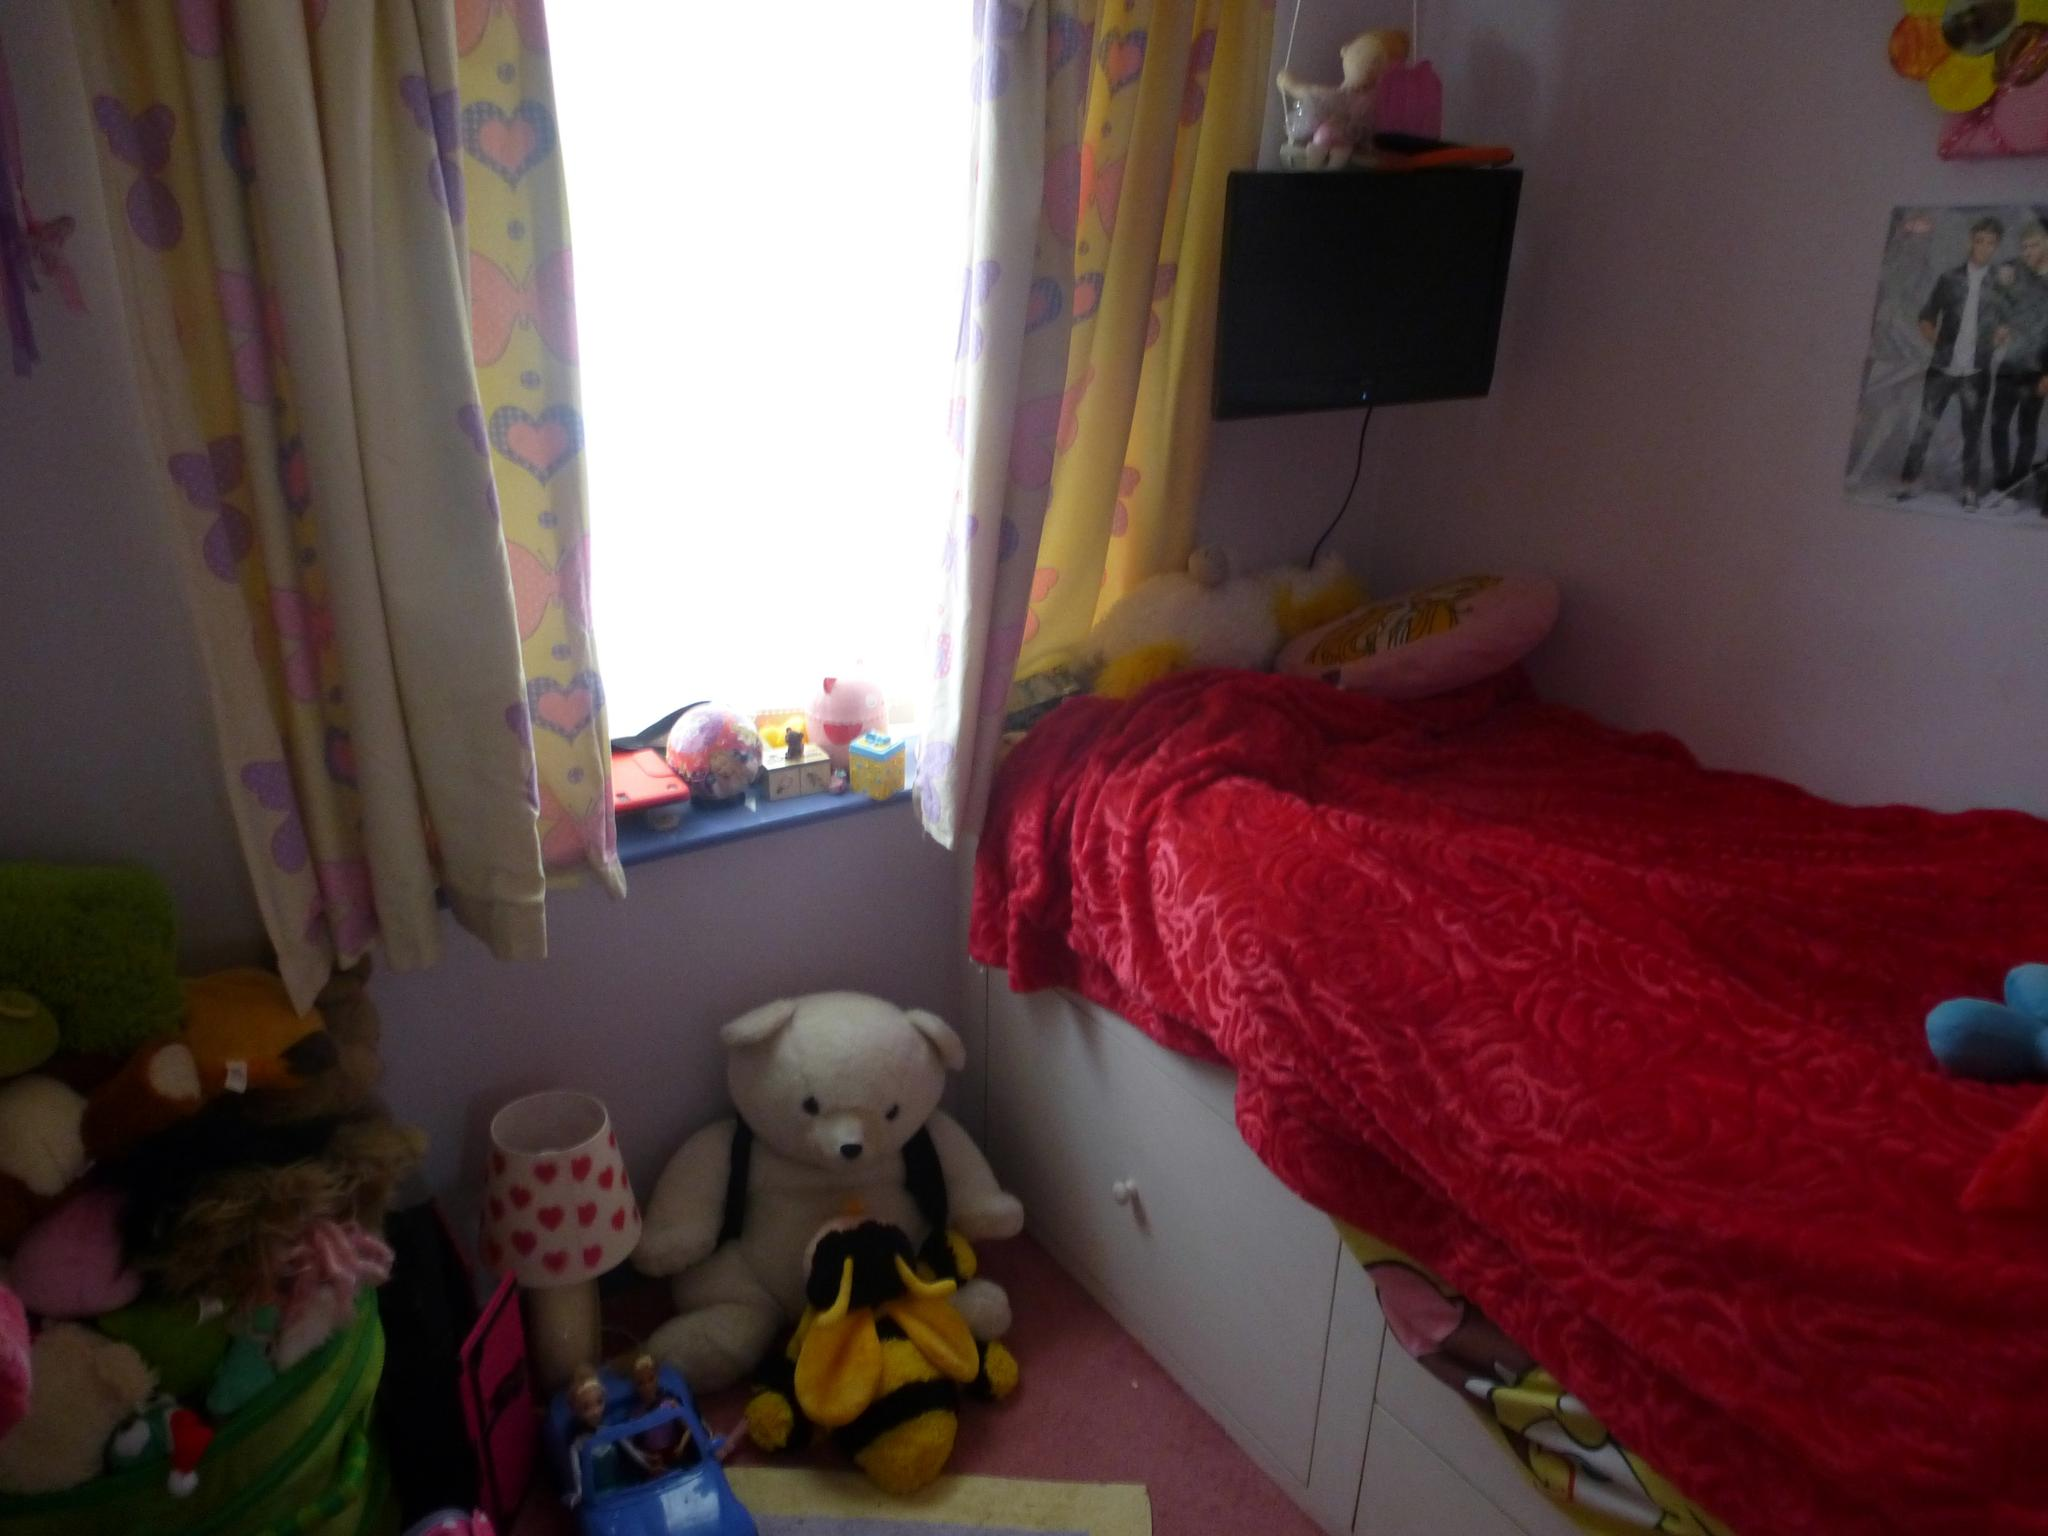 Image 1 of 1 of BEDROOM 4, on Accommodation Comprising for